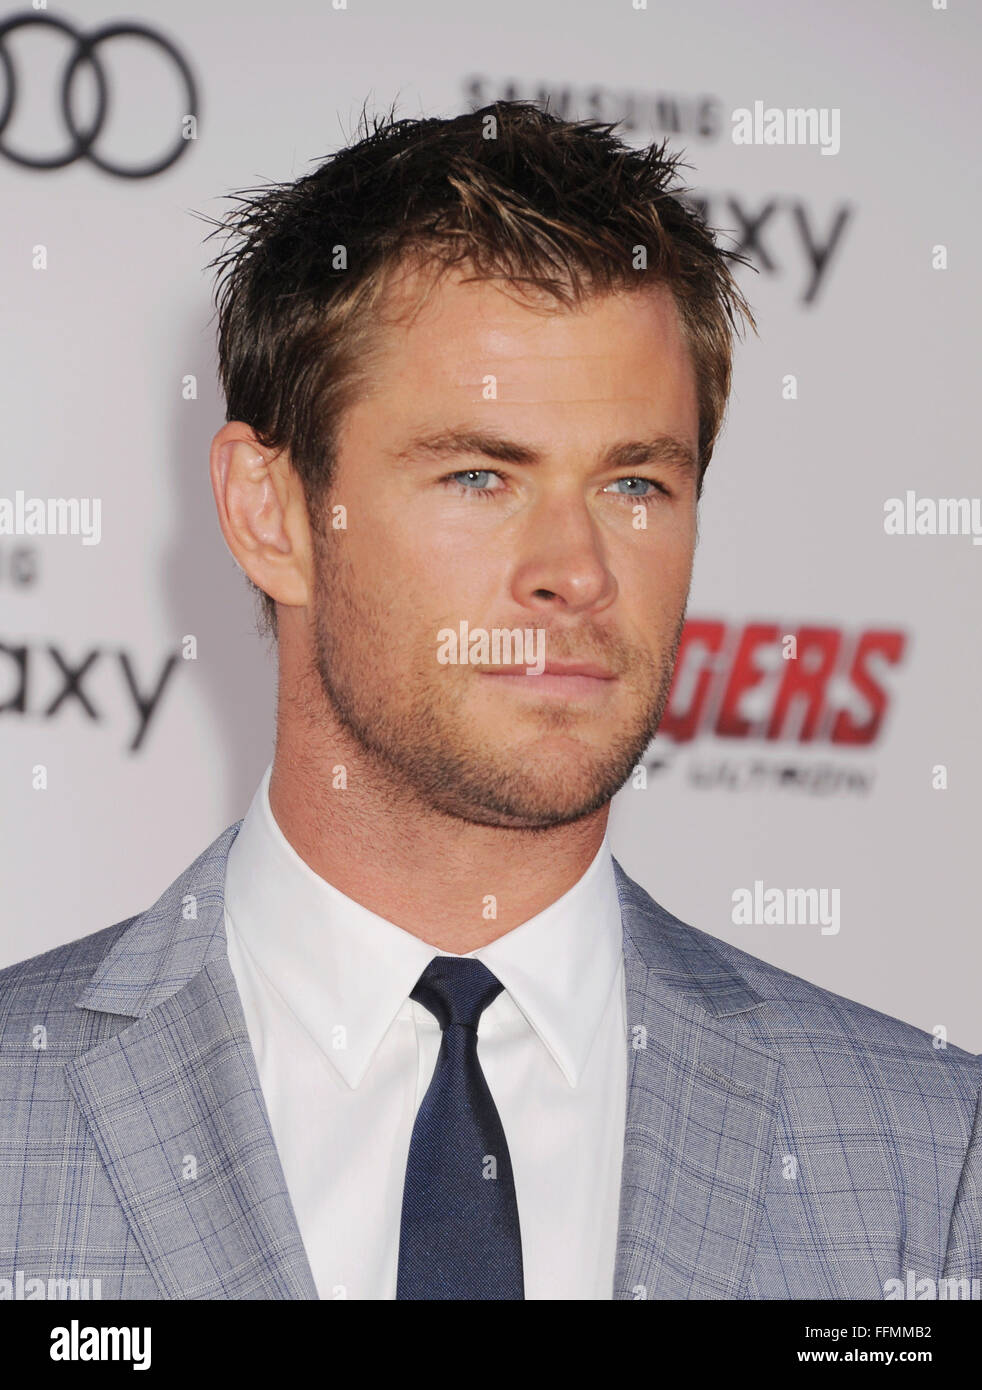 """Actor Chris Hemsworth arrives at the Marvel's """"Avengers: Age Of Ultron"""" - Los Angeles Premiere at Dolby Theatre Stock Photo"""